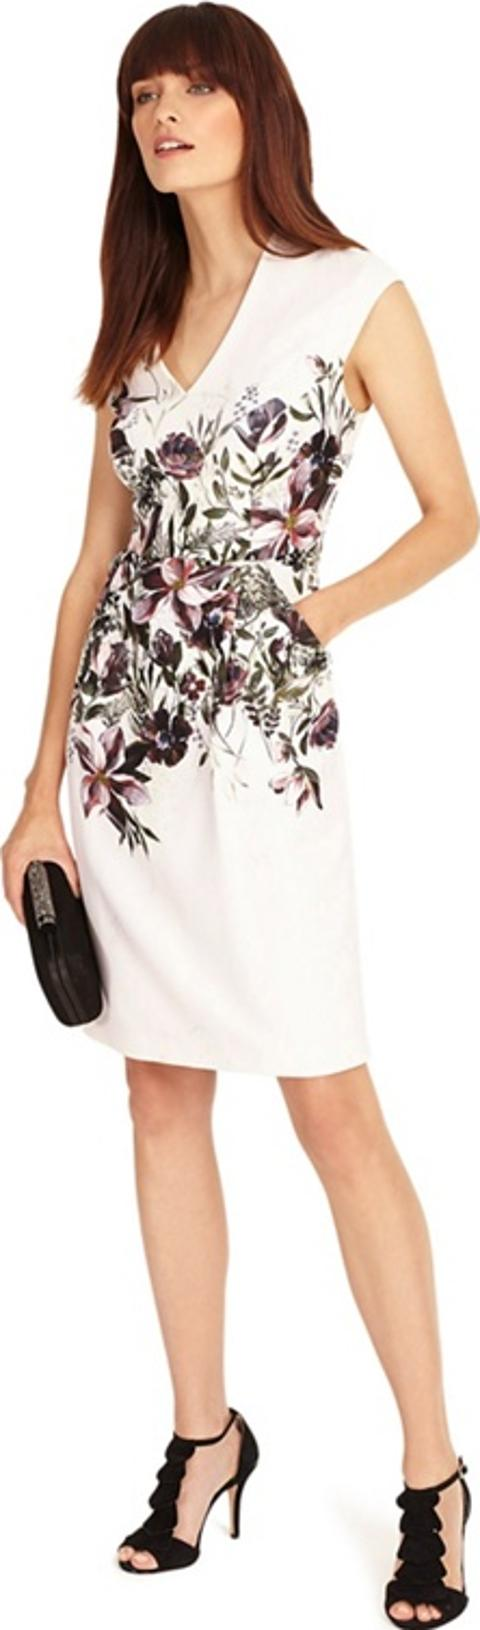 71ab7322f2 Shop Floral Print Dresses for Women - Obsessory